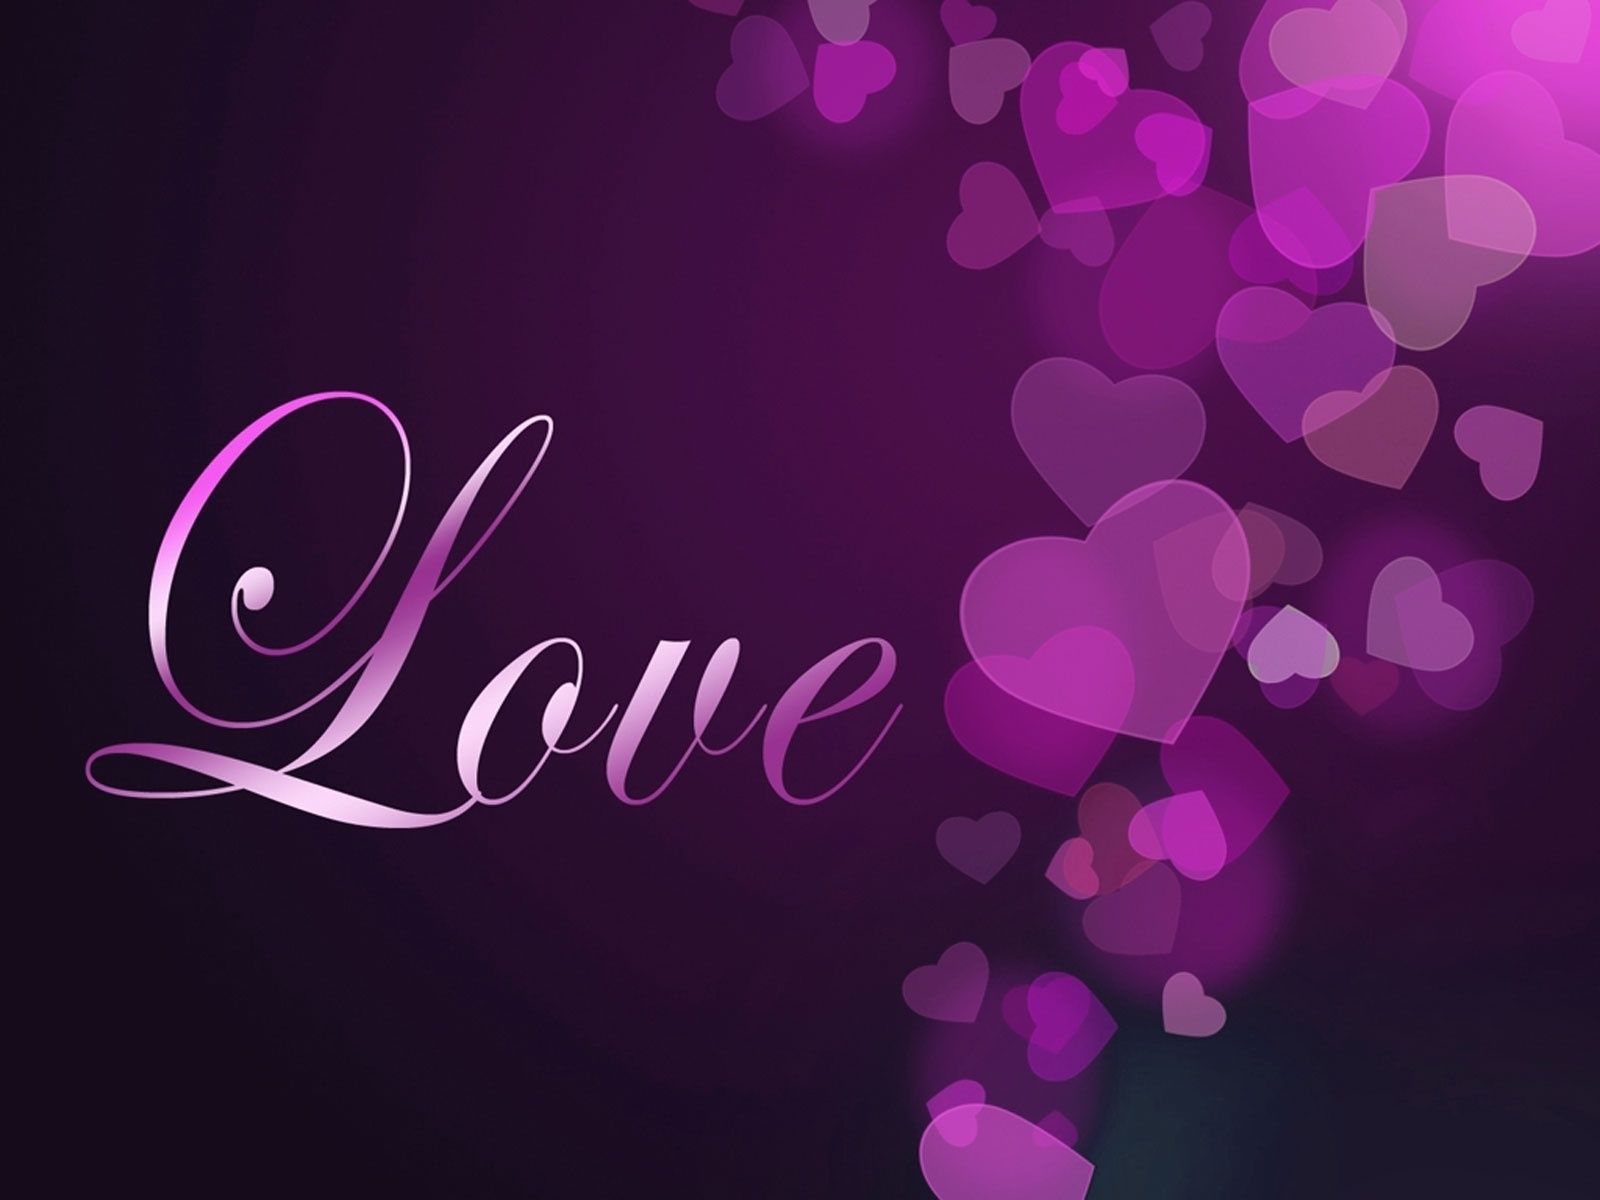 If You Love Purple Purple Heart Love You 1600 x 1200